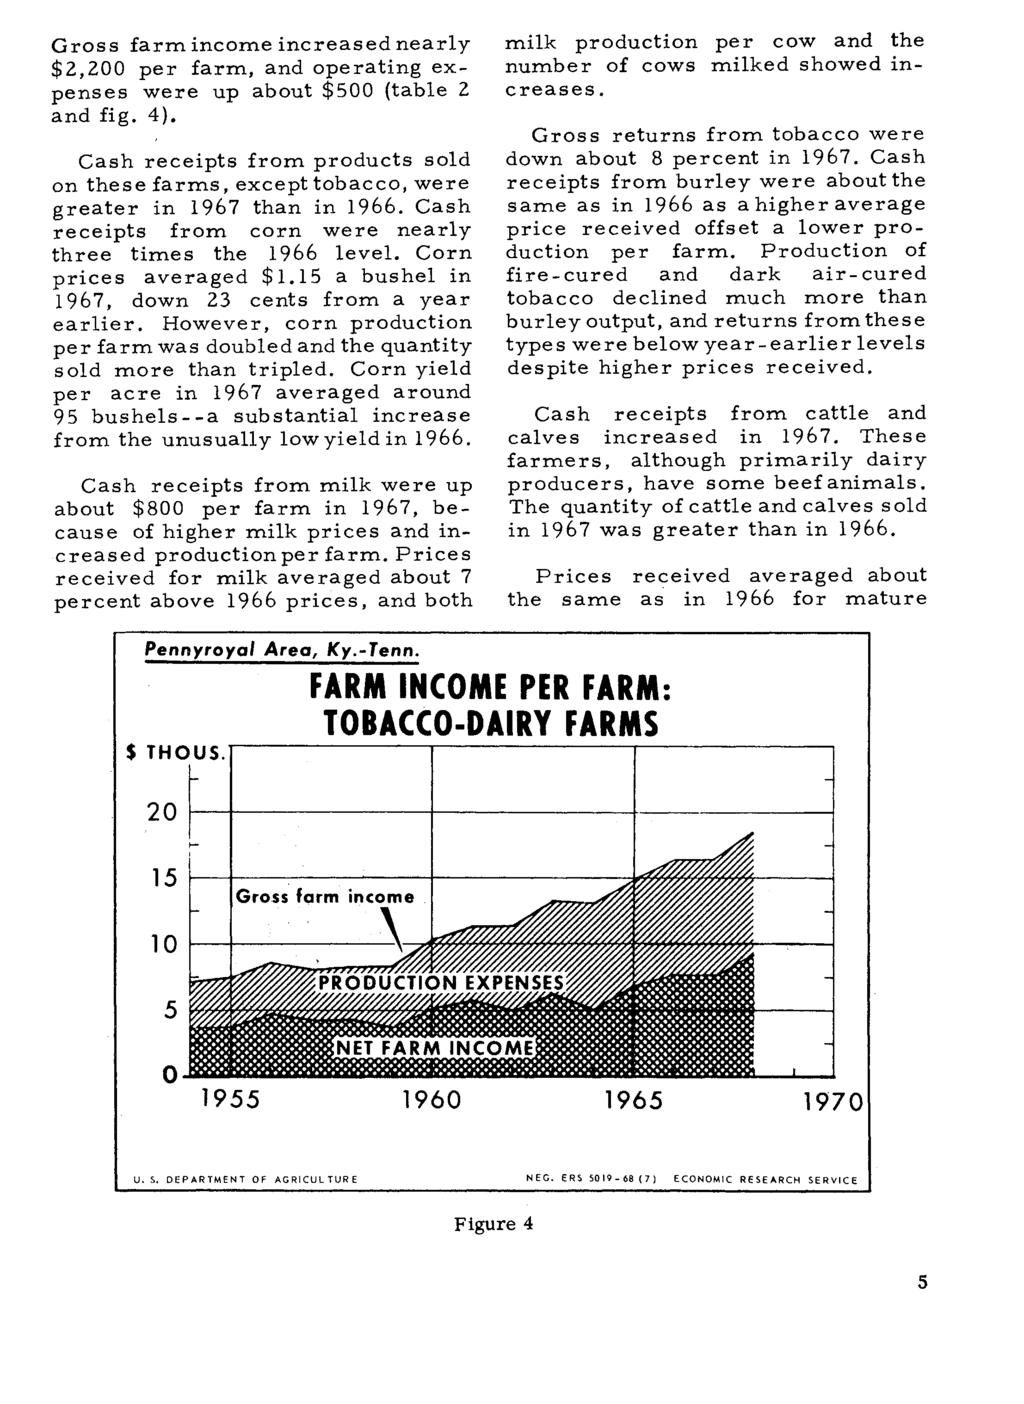 Gross farm income increased nearly $2,200 per farm, and operating expenses were up about $500 (table 2 and fig. 4).